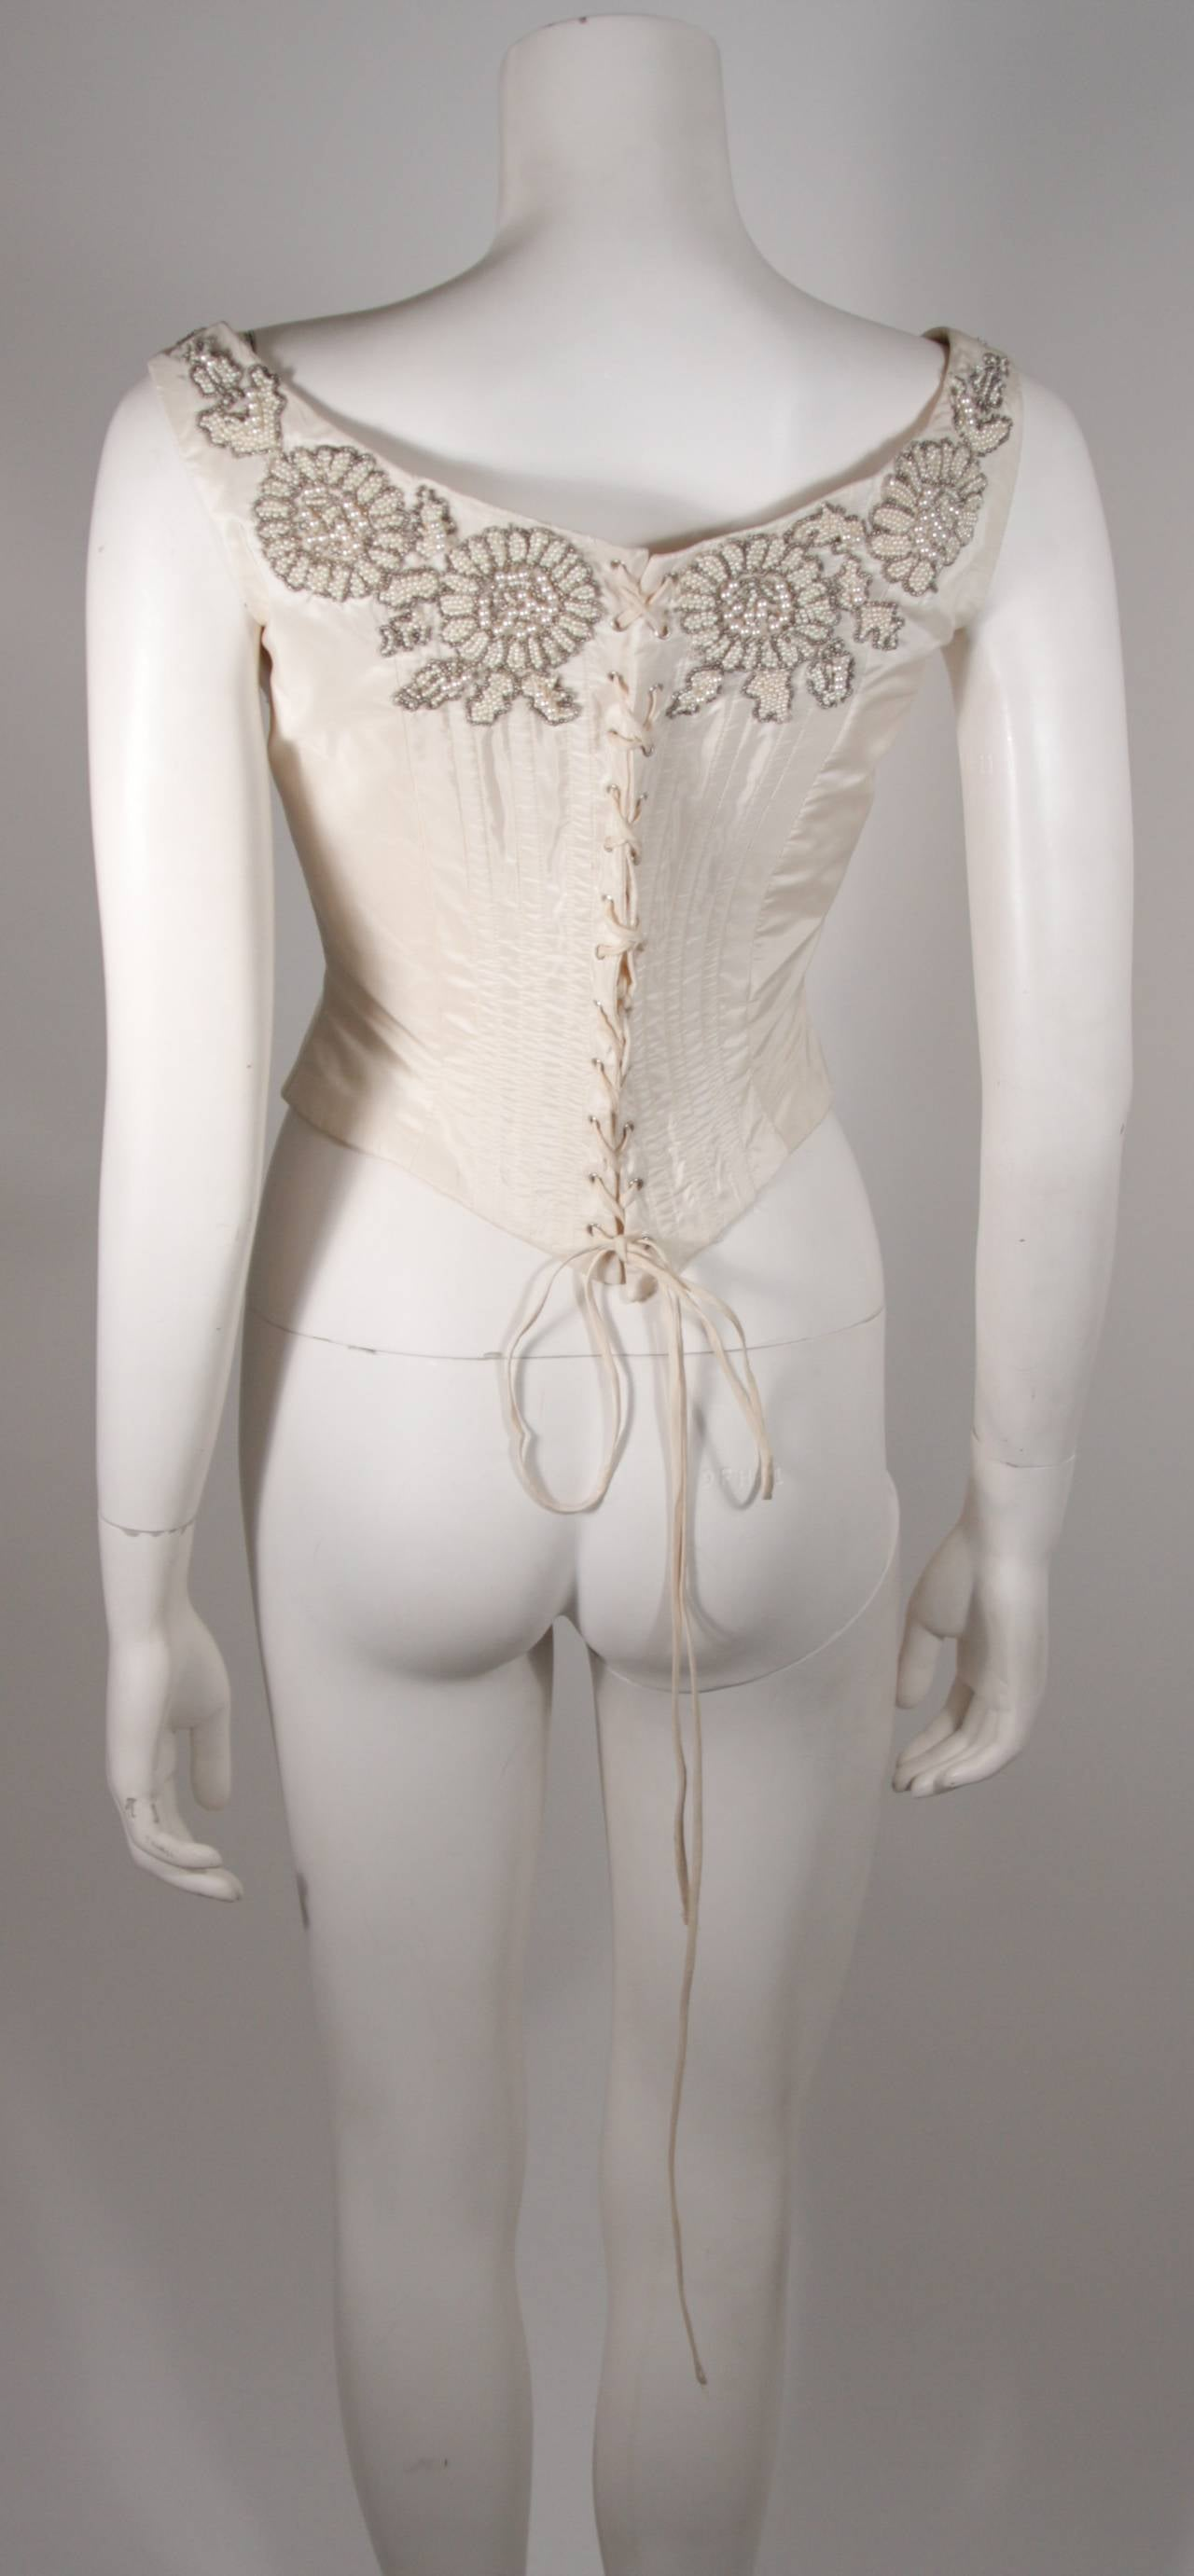 Eavis & Brown London Beaded Cream Silk Corset Bustier Size M For Sale 2